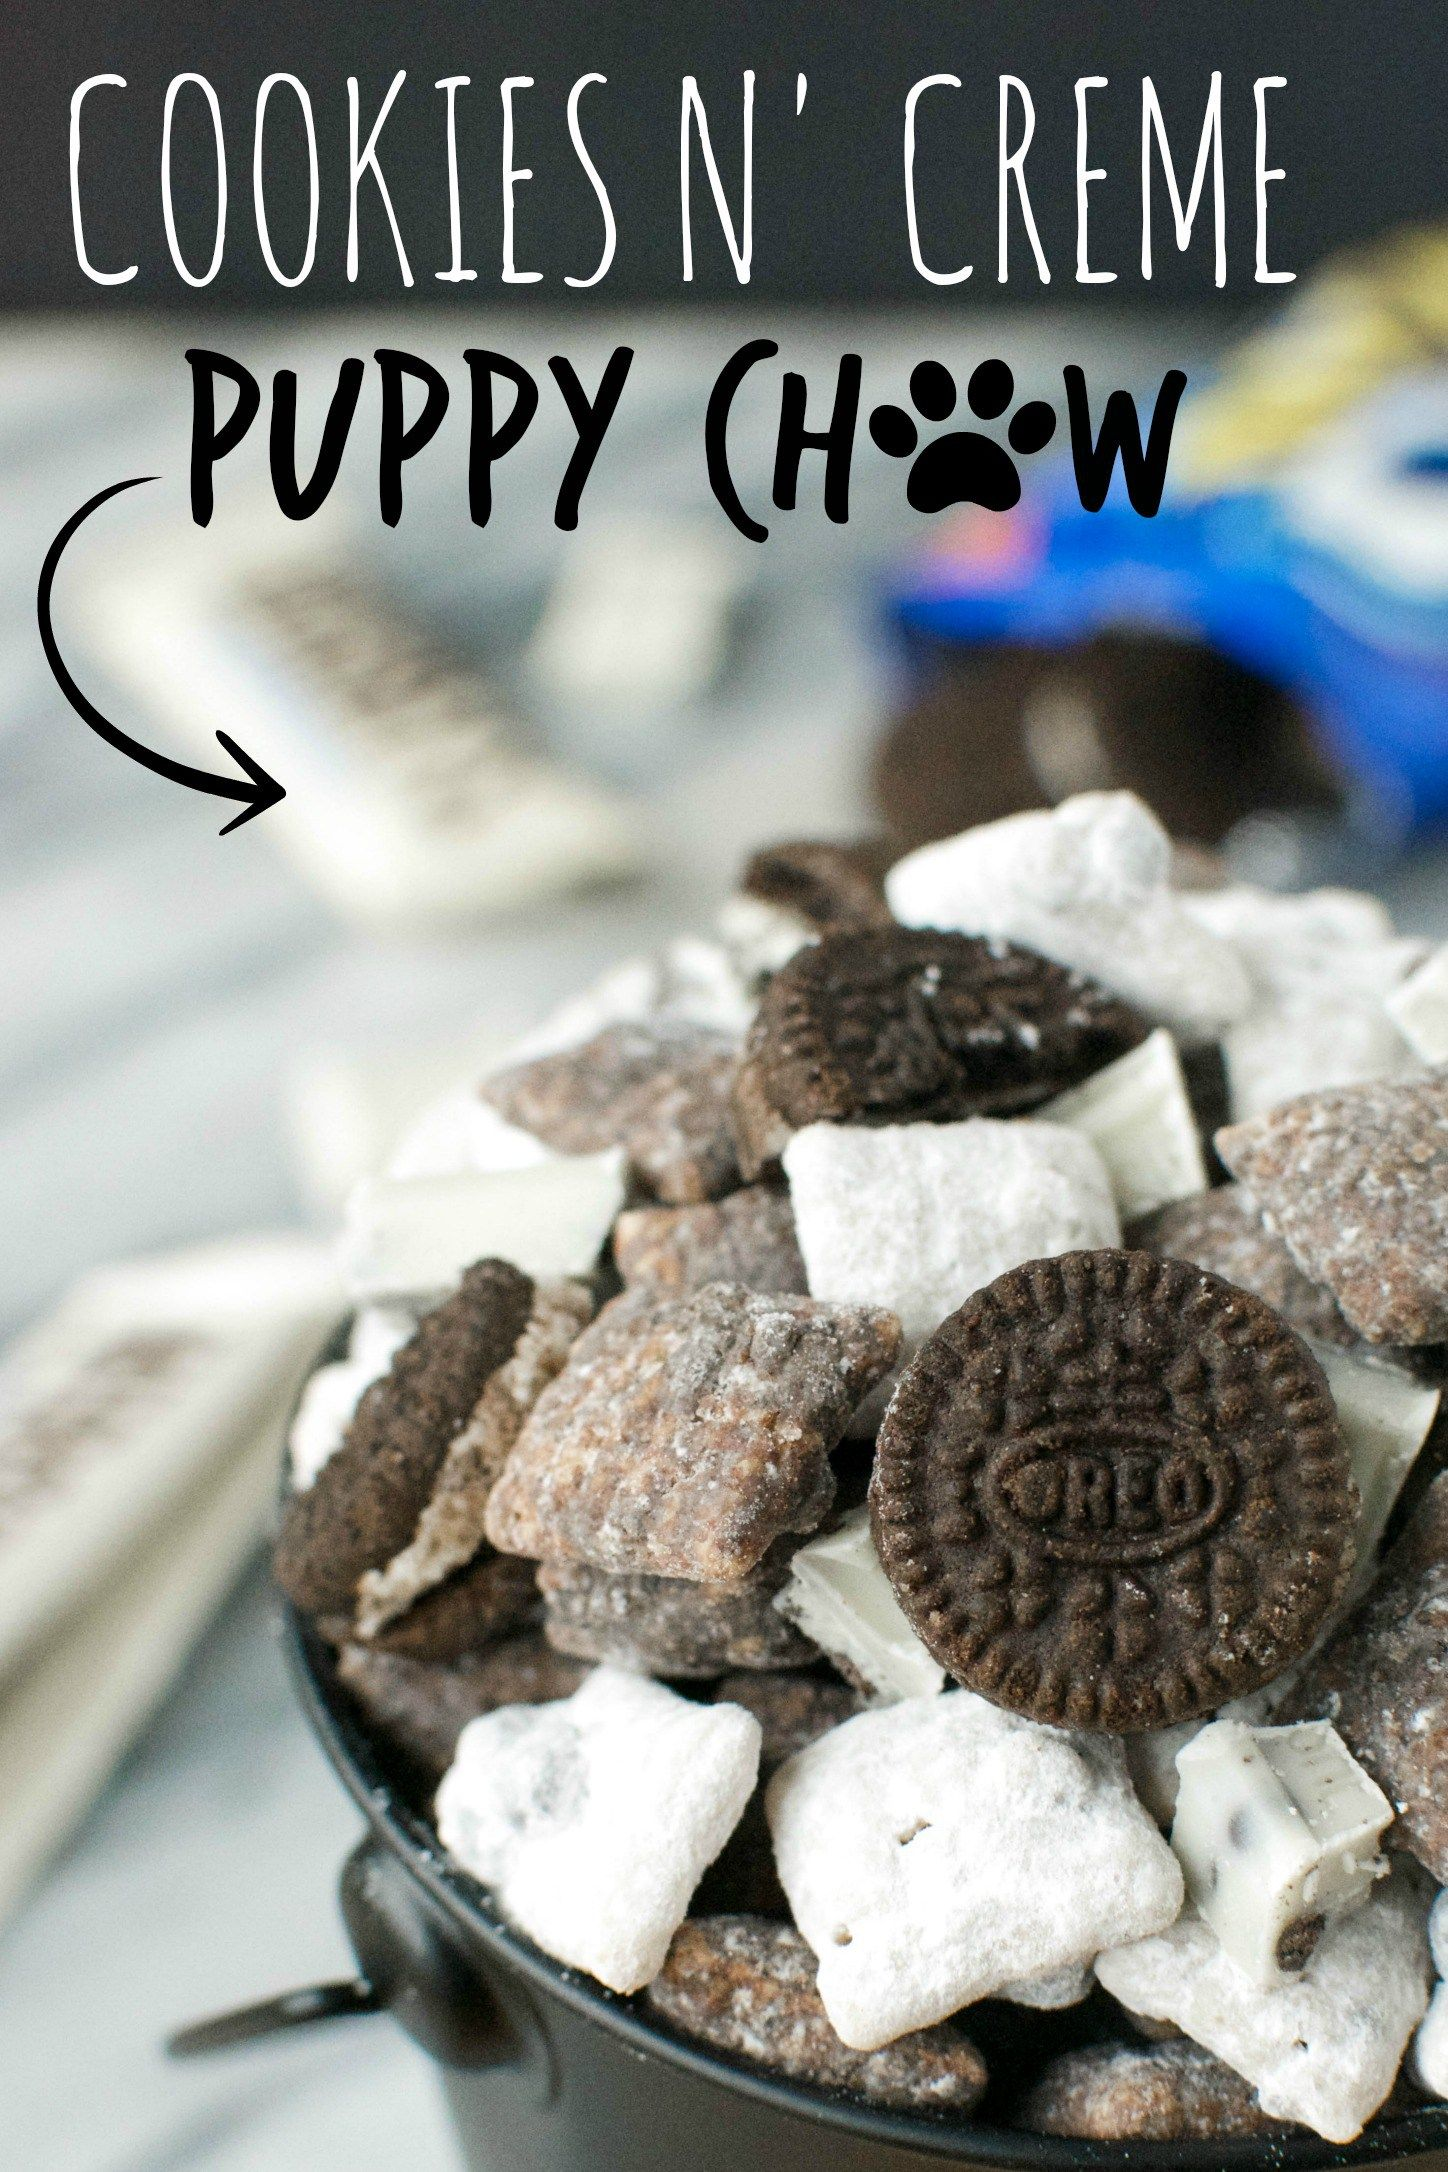 Cookies n' Creme Puppy Chow | A baJillian Recipes